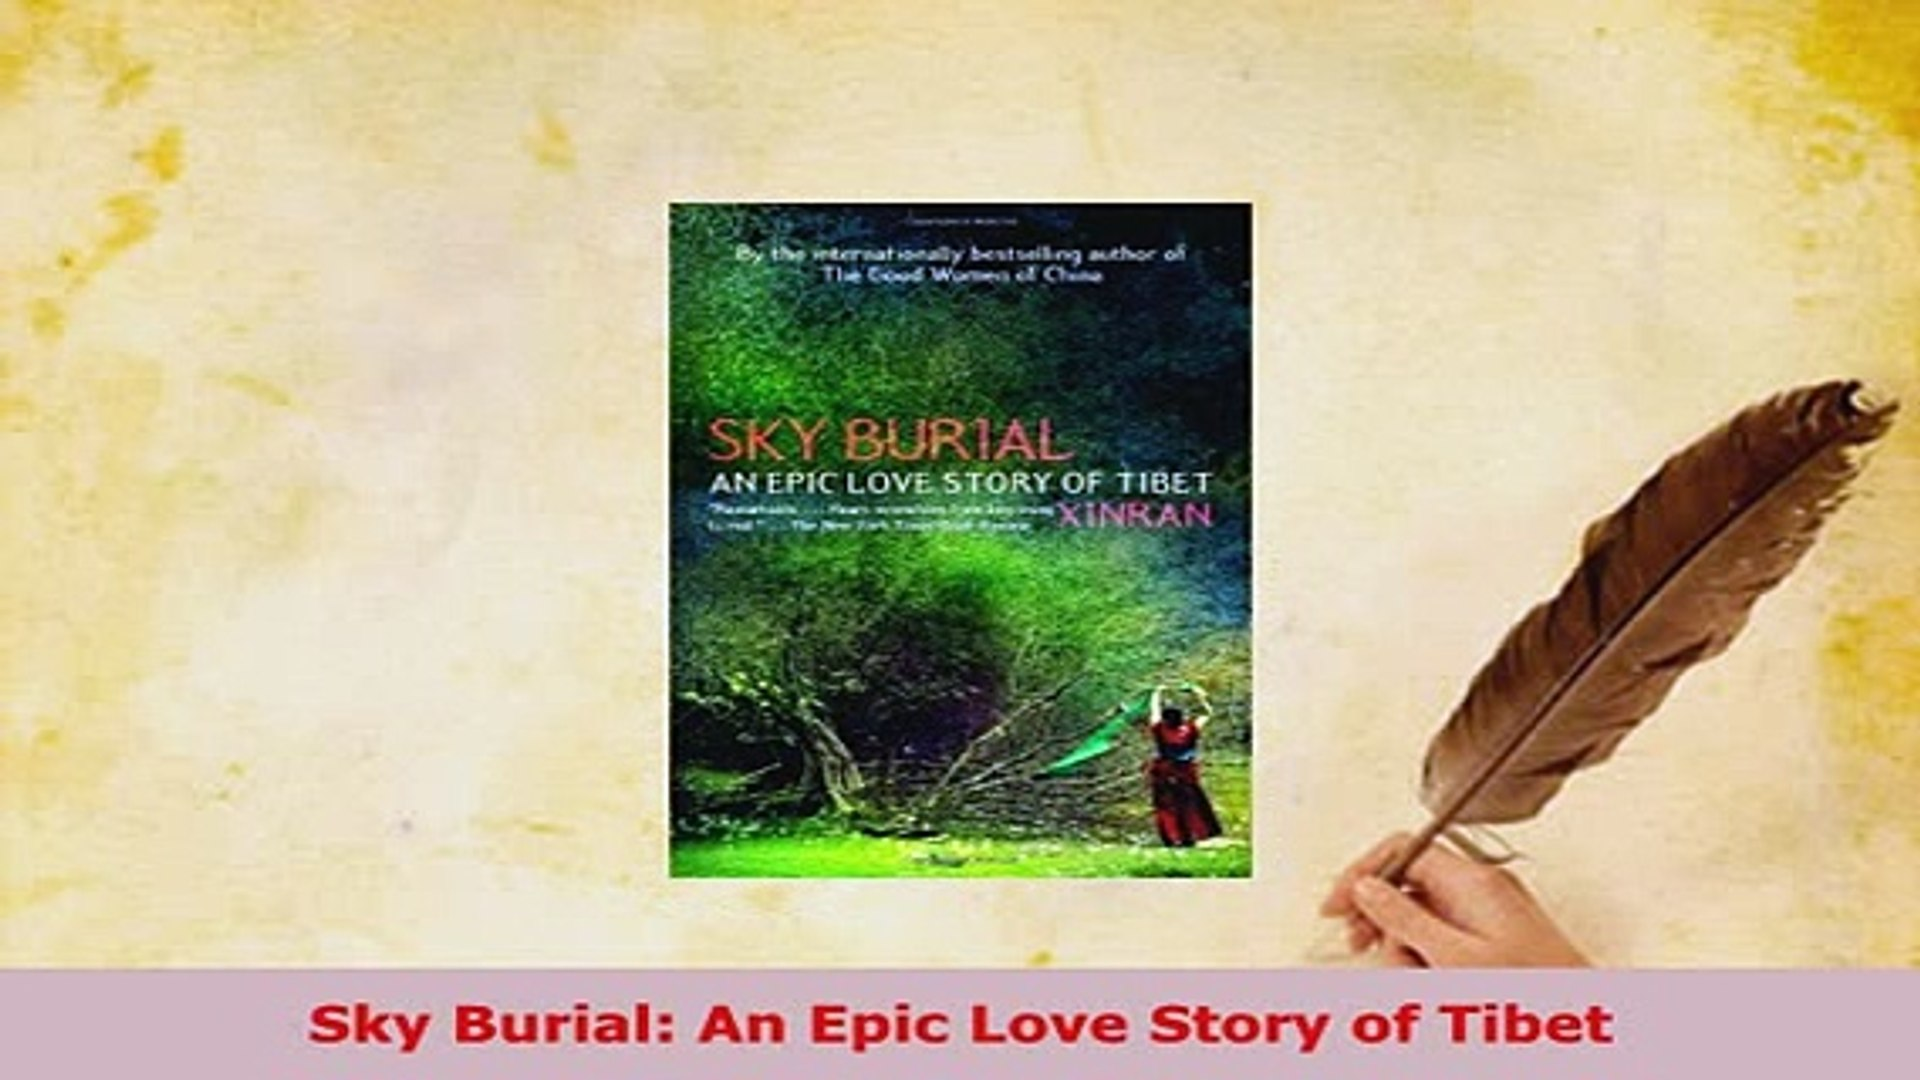 Sky Burial An Epic Love Story of Tibet